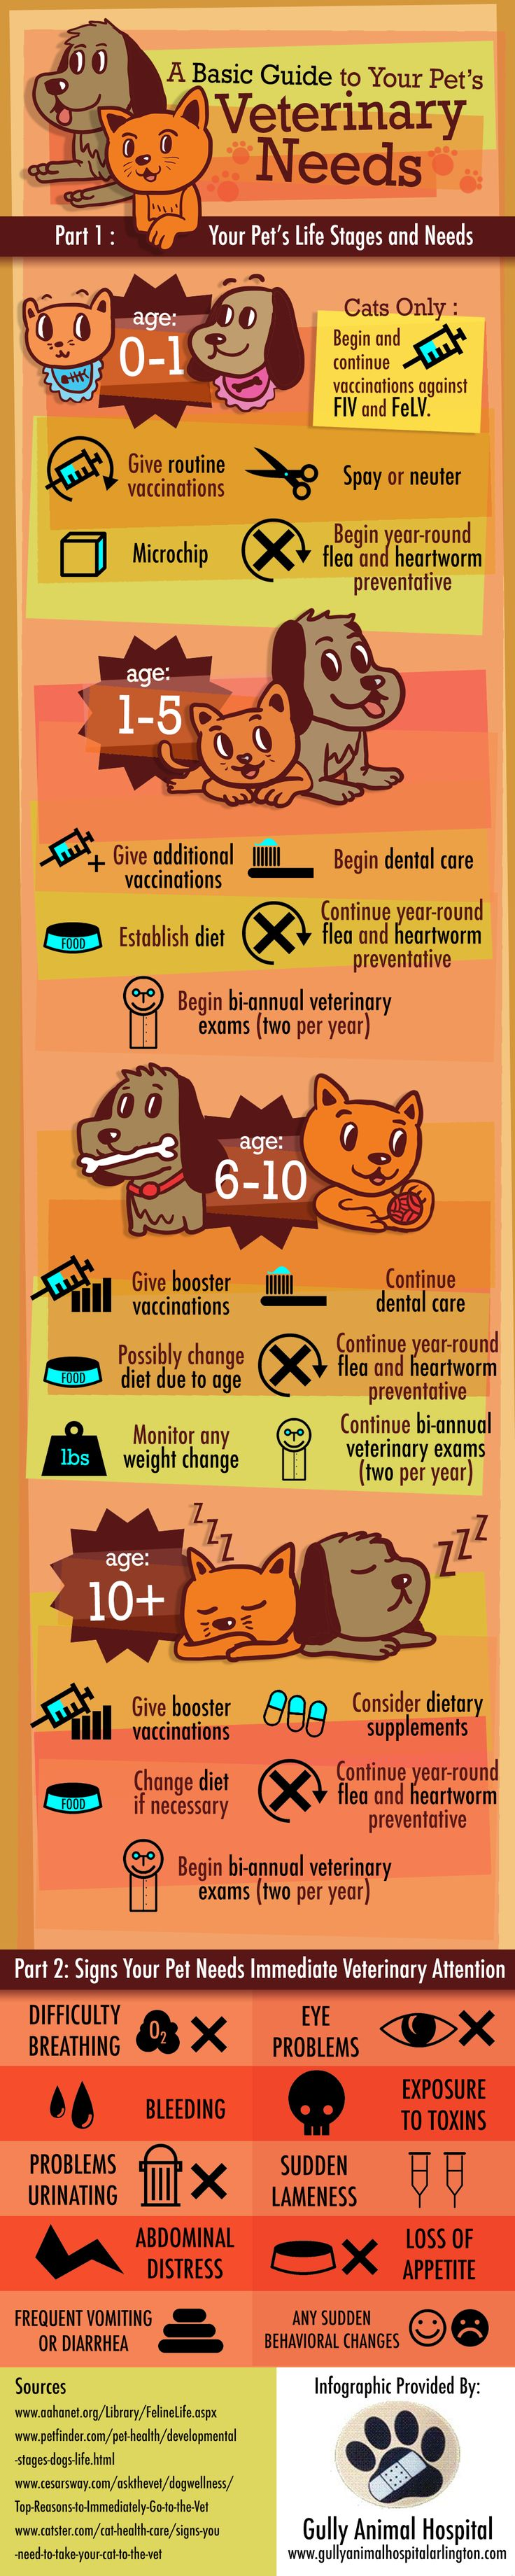 Guide to Your Pet's Veterinary Needs Infographic - An Infographic from BestInfographics.co